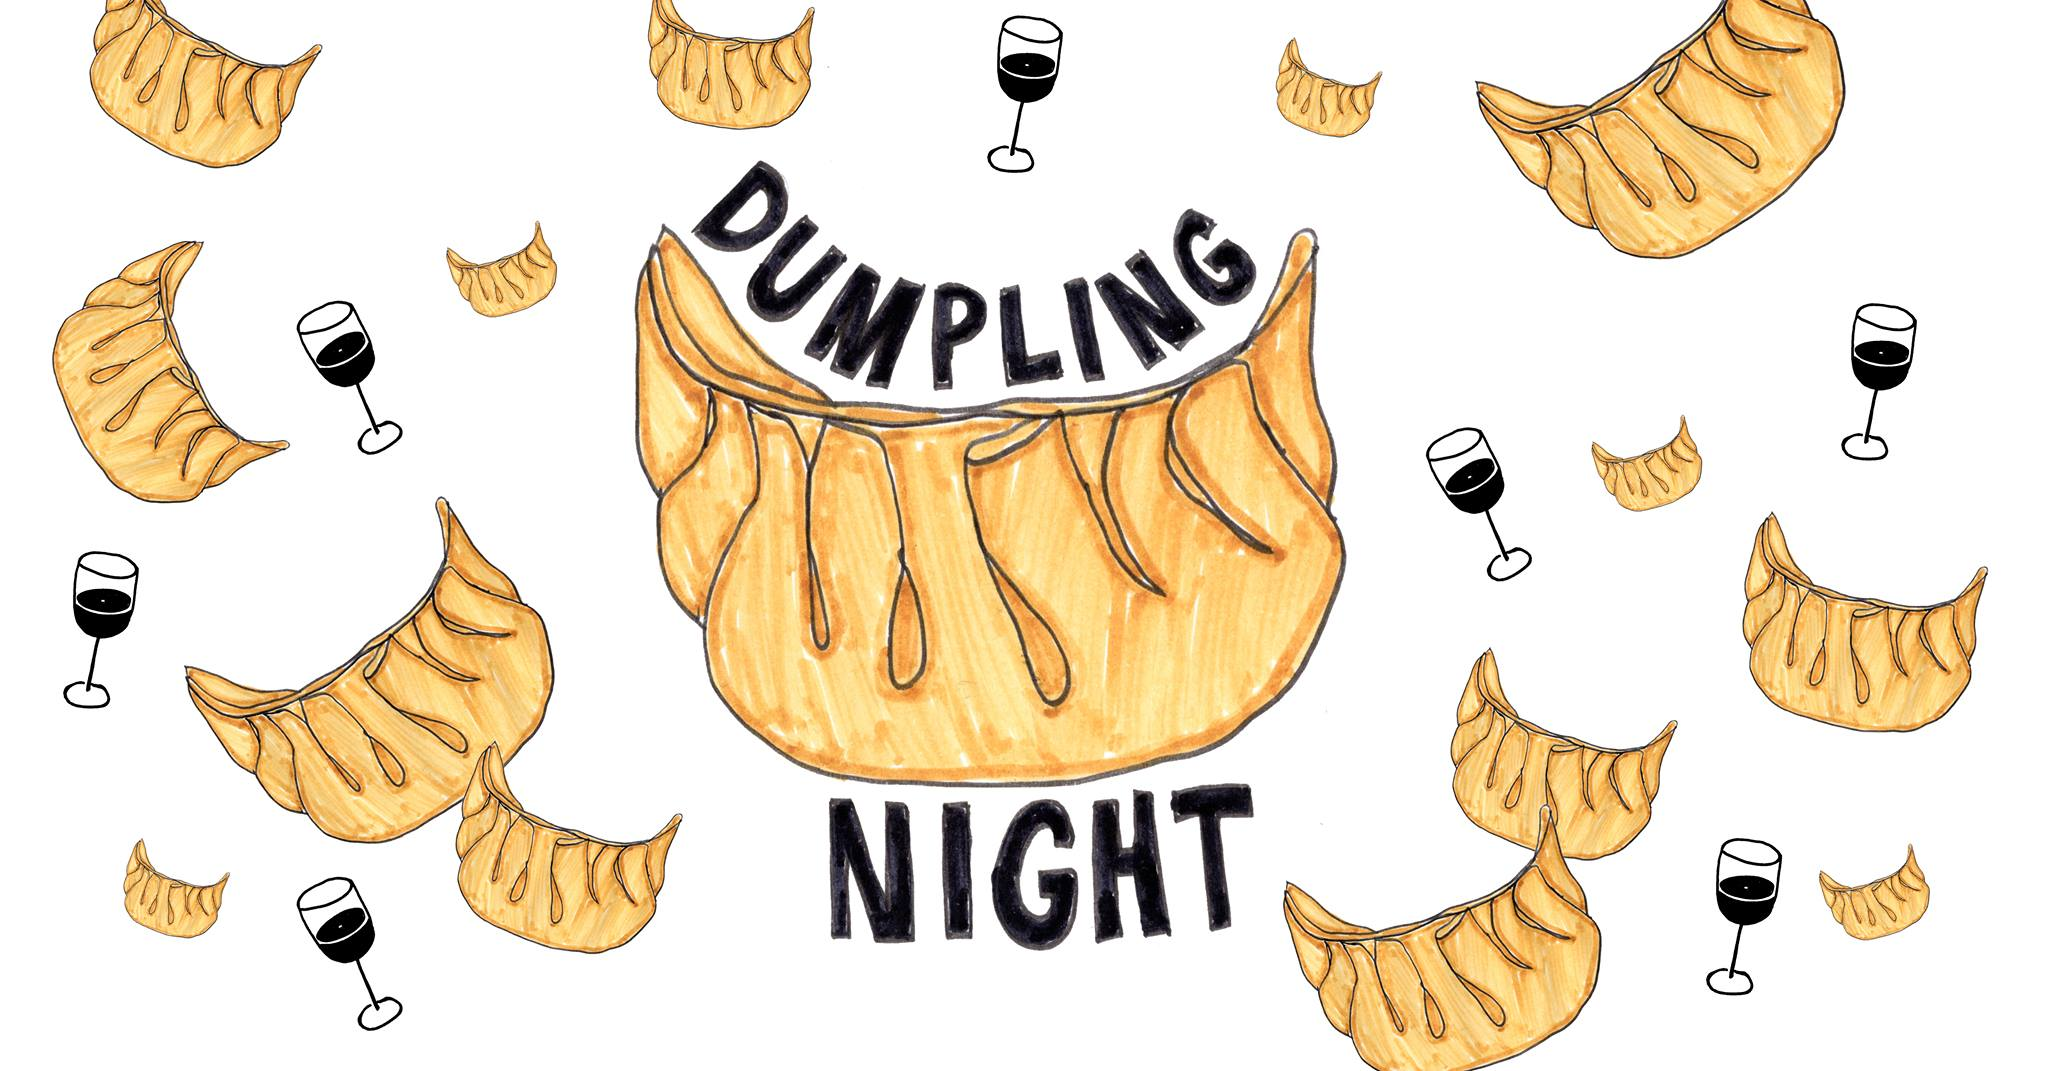 Dumpling night Motif wine